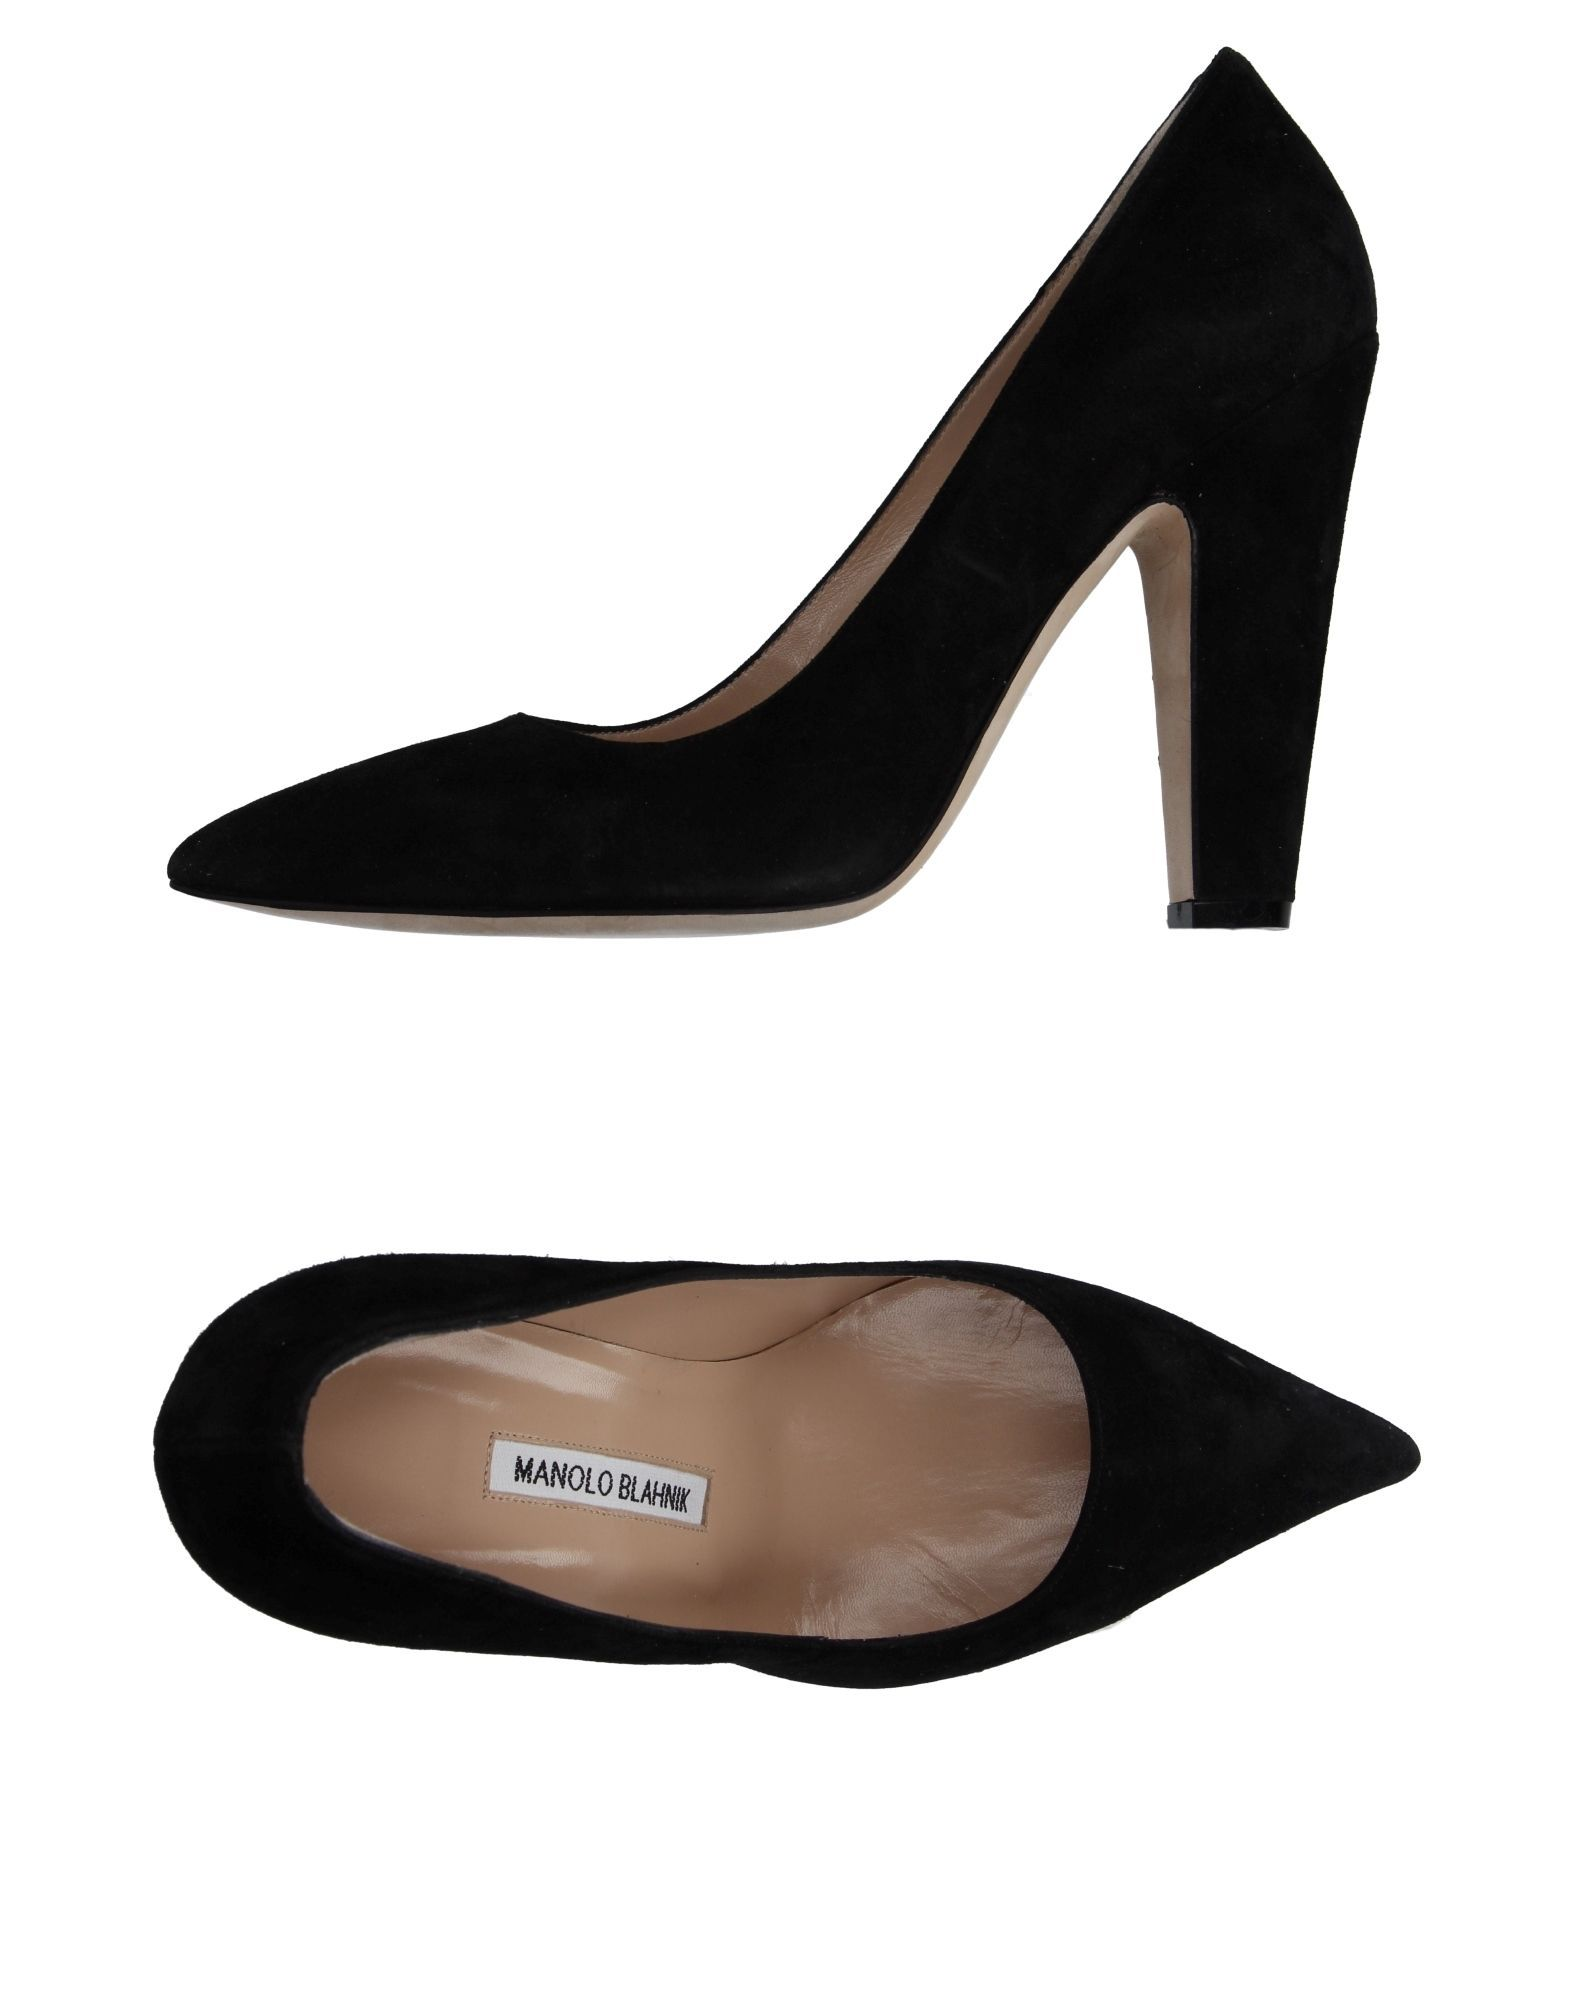 Manolo Blahnik Black Leather Pointed Court Shoes